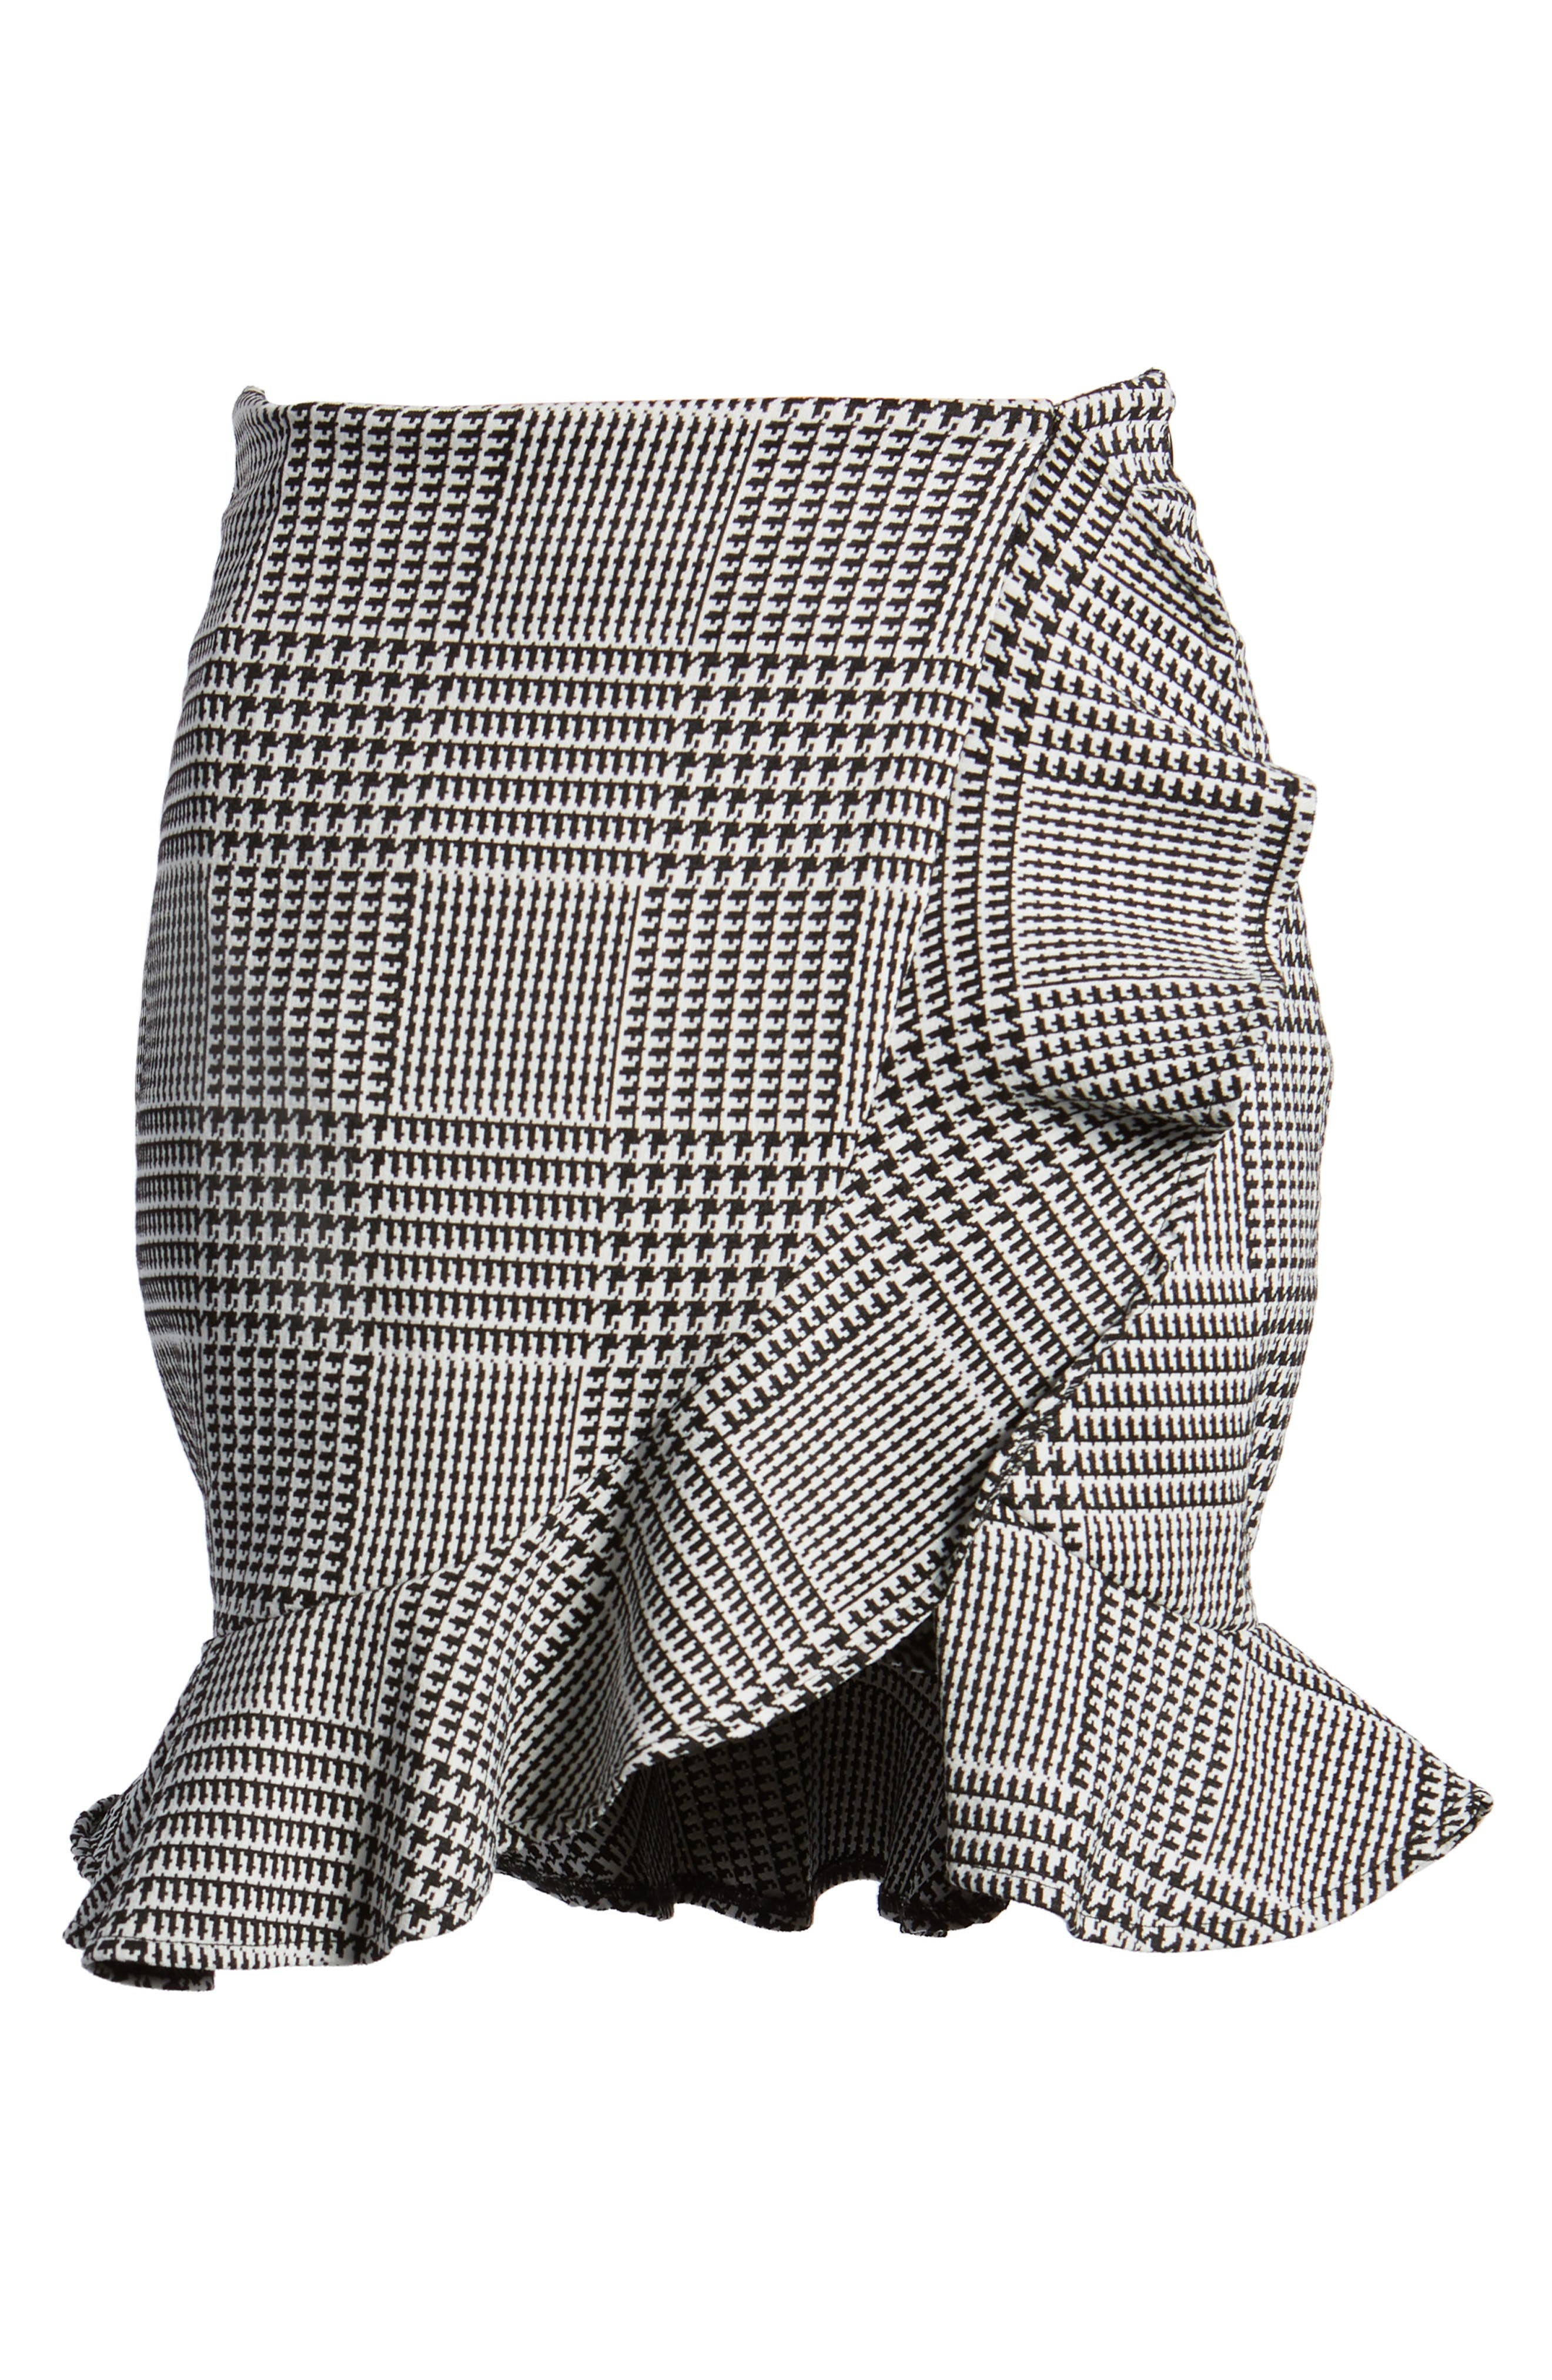 Affection Ruffle Houndstooth Skirt,                             Alternate thumbnail 6, color,                             020